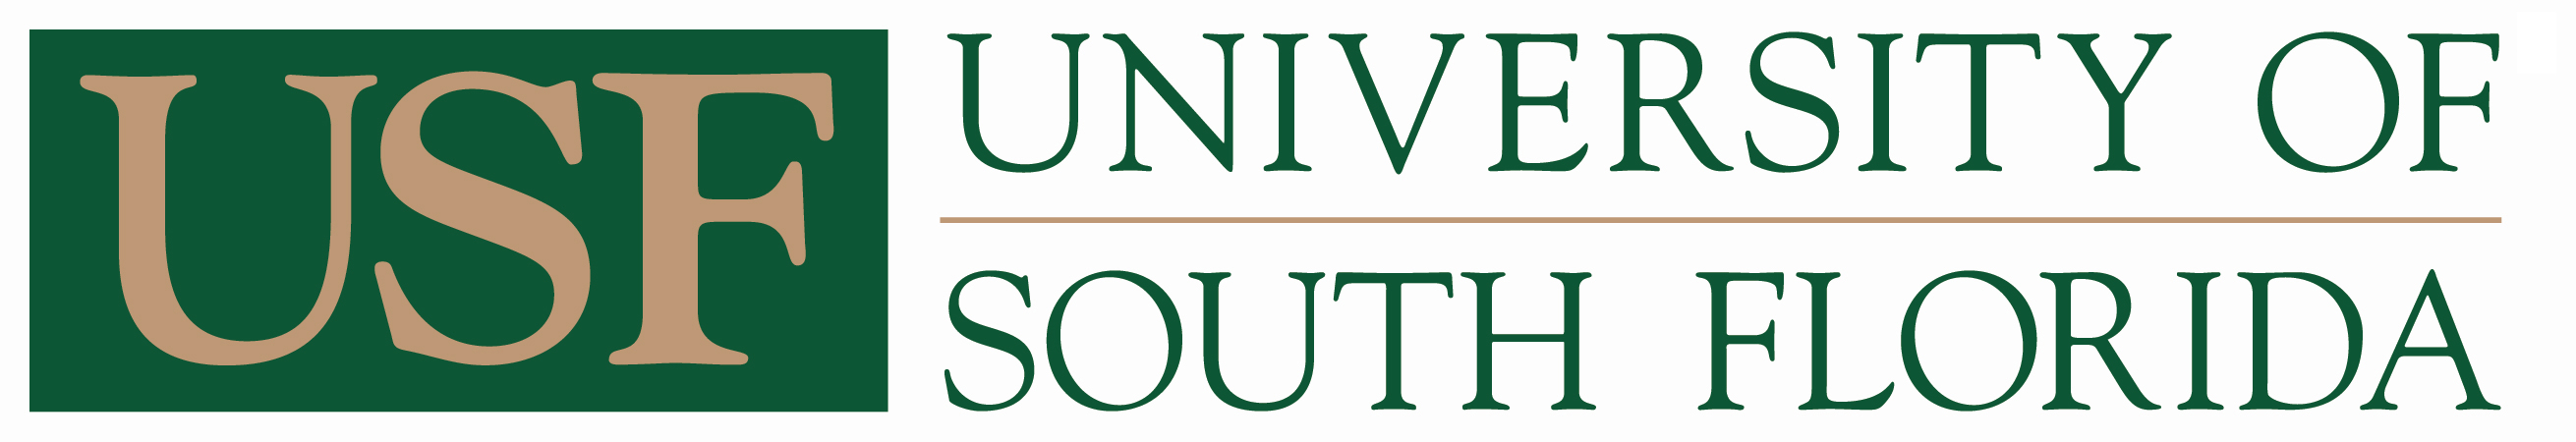 University of South Florida_Cybersecurity Masters Degree Programs